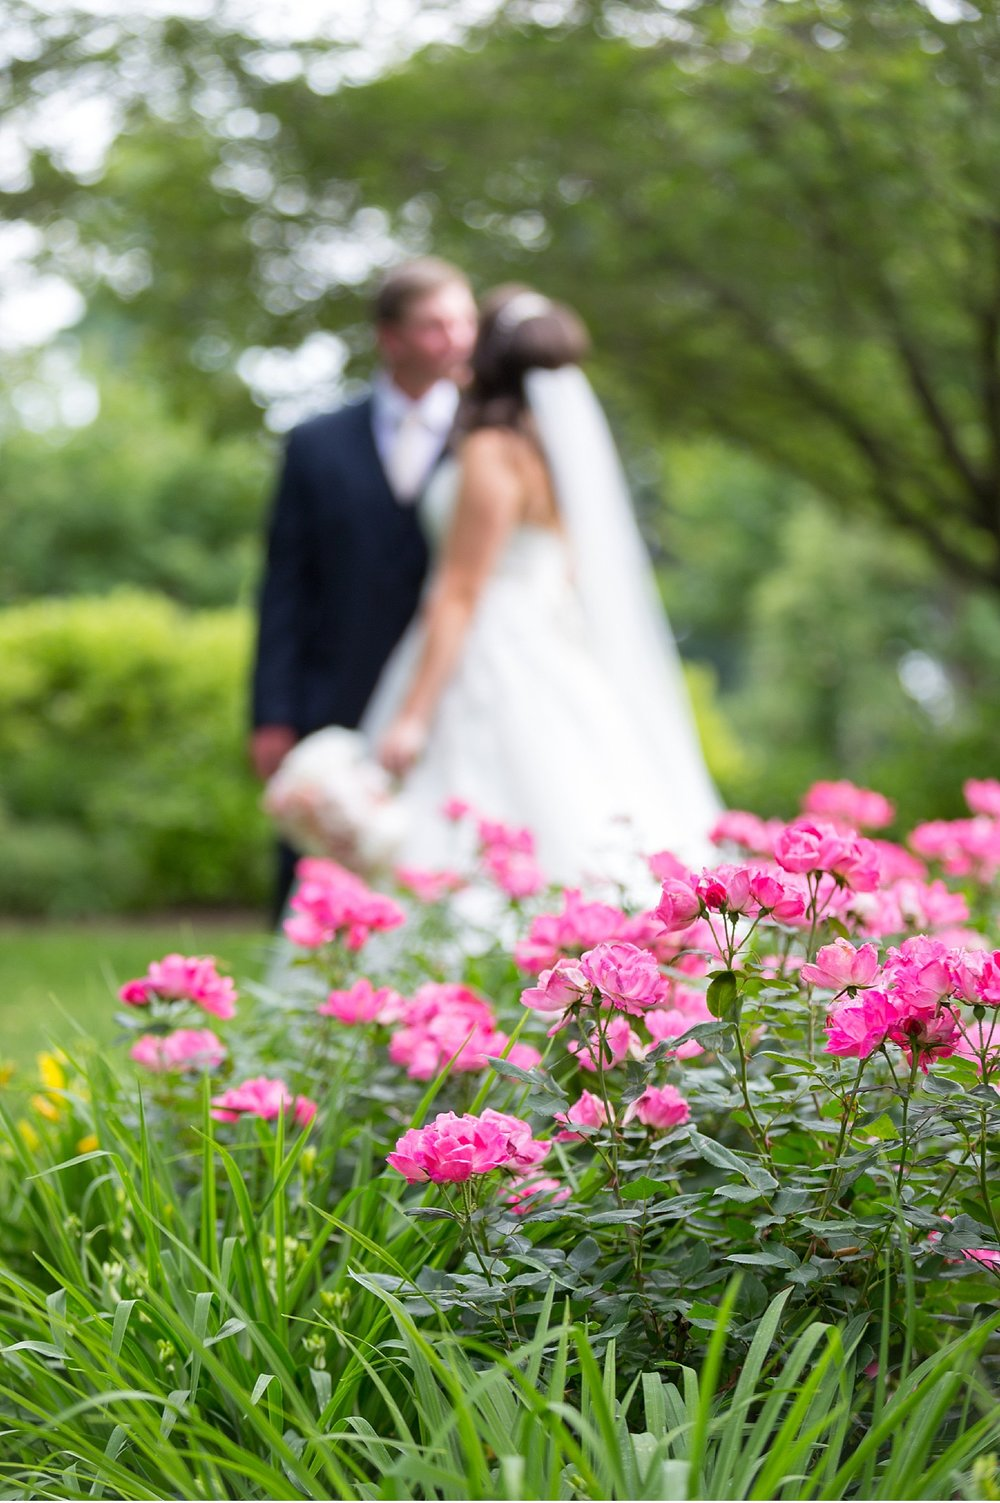 Hershey Gardens Hershey Country Club Summer beautiful wedding photography_1604.jpg